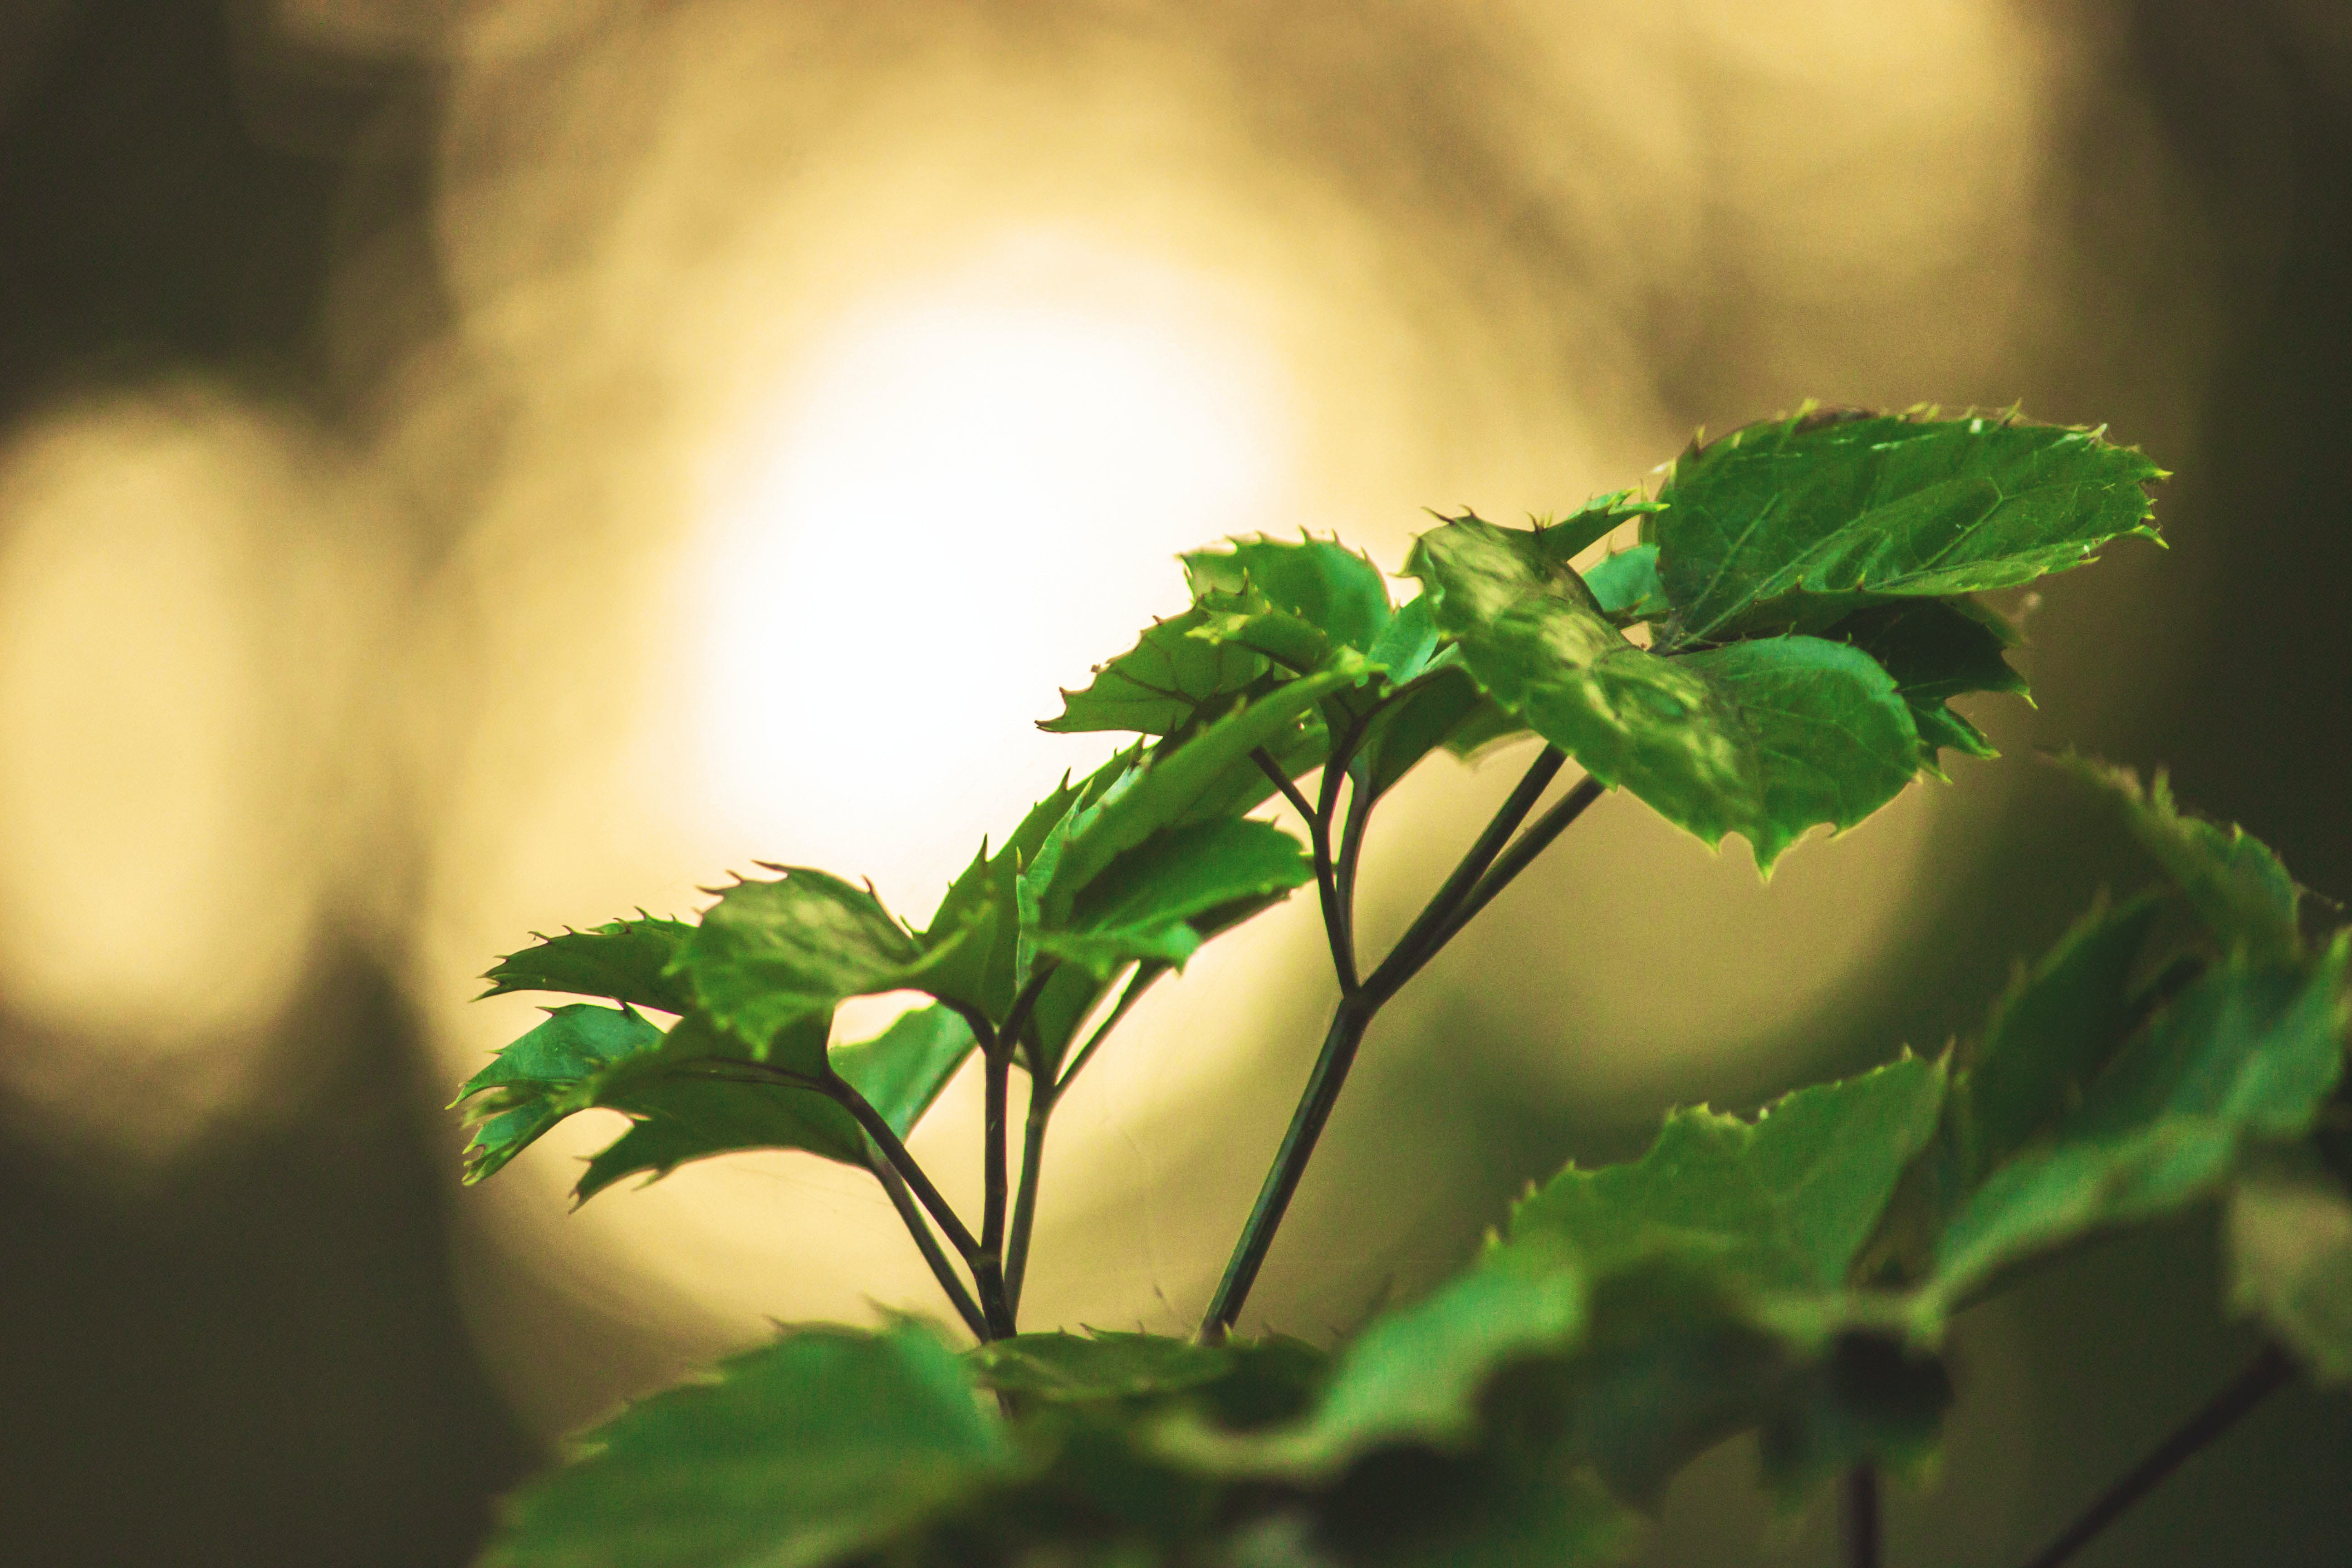 Free stock photo of plant, evening, leaves, bokeh